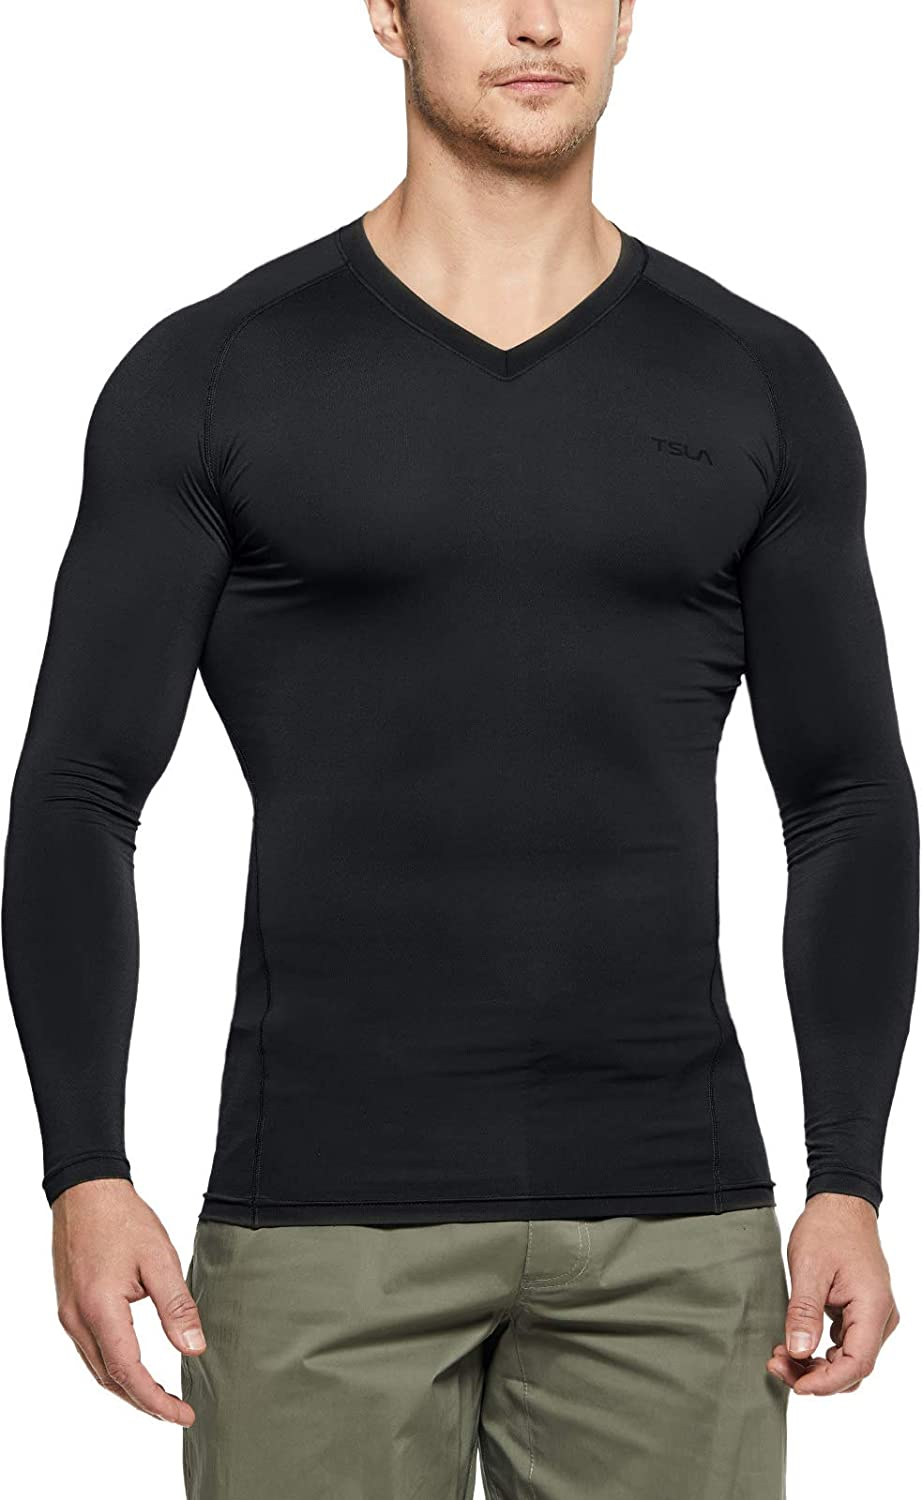 Details about  /Men/'s Athletic Compression Tops Sports Gym Running Long Sleeves T-Shirt Cool Dry